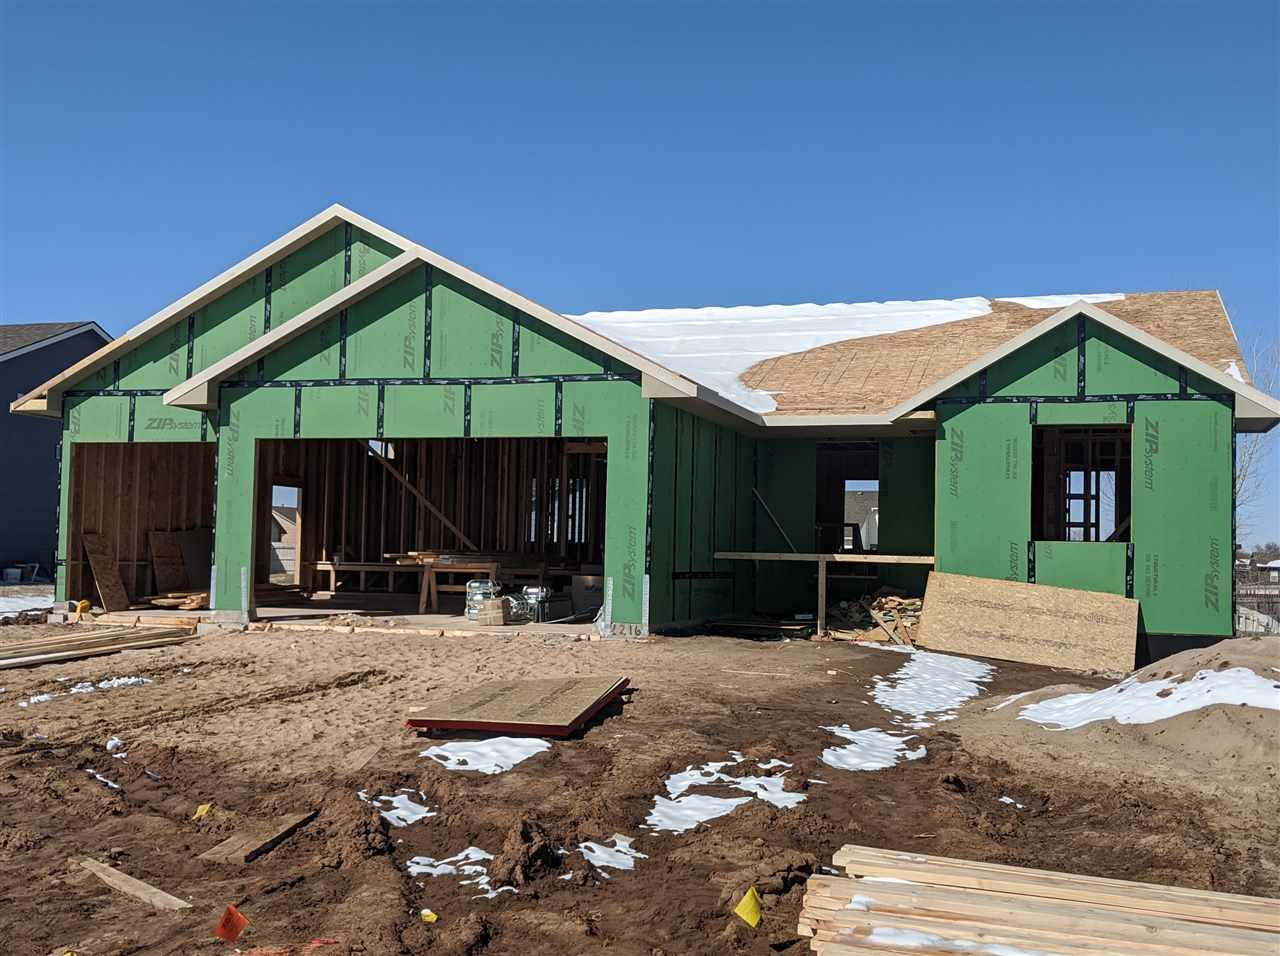 Very Popular Extended Morgan A Mid Level Landing Plan.  3 bedrooms, 3 baths, with room to finish 4th and 5th bedrooms and a Rec/Family Room in the basement. Low Specials :)